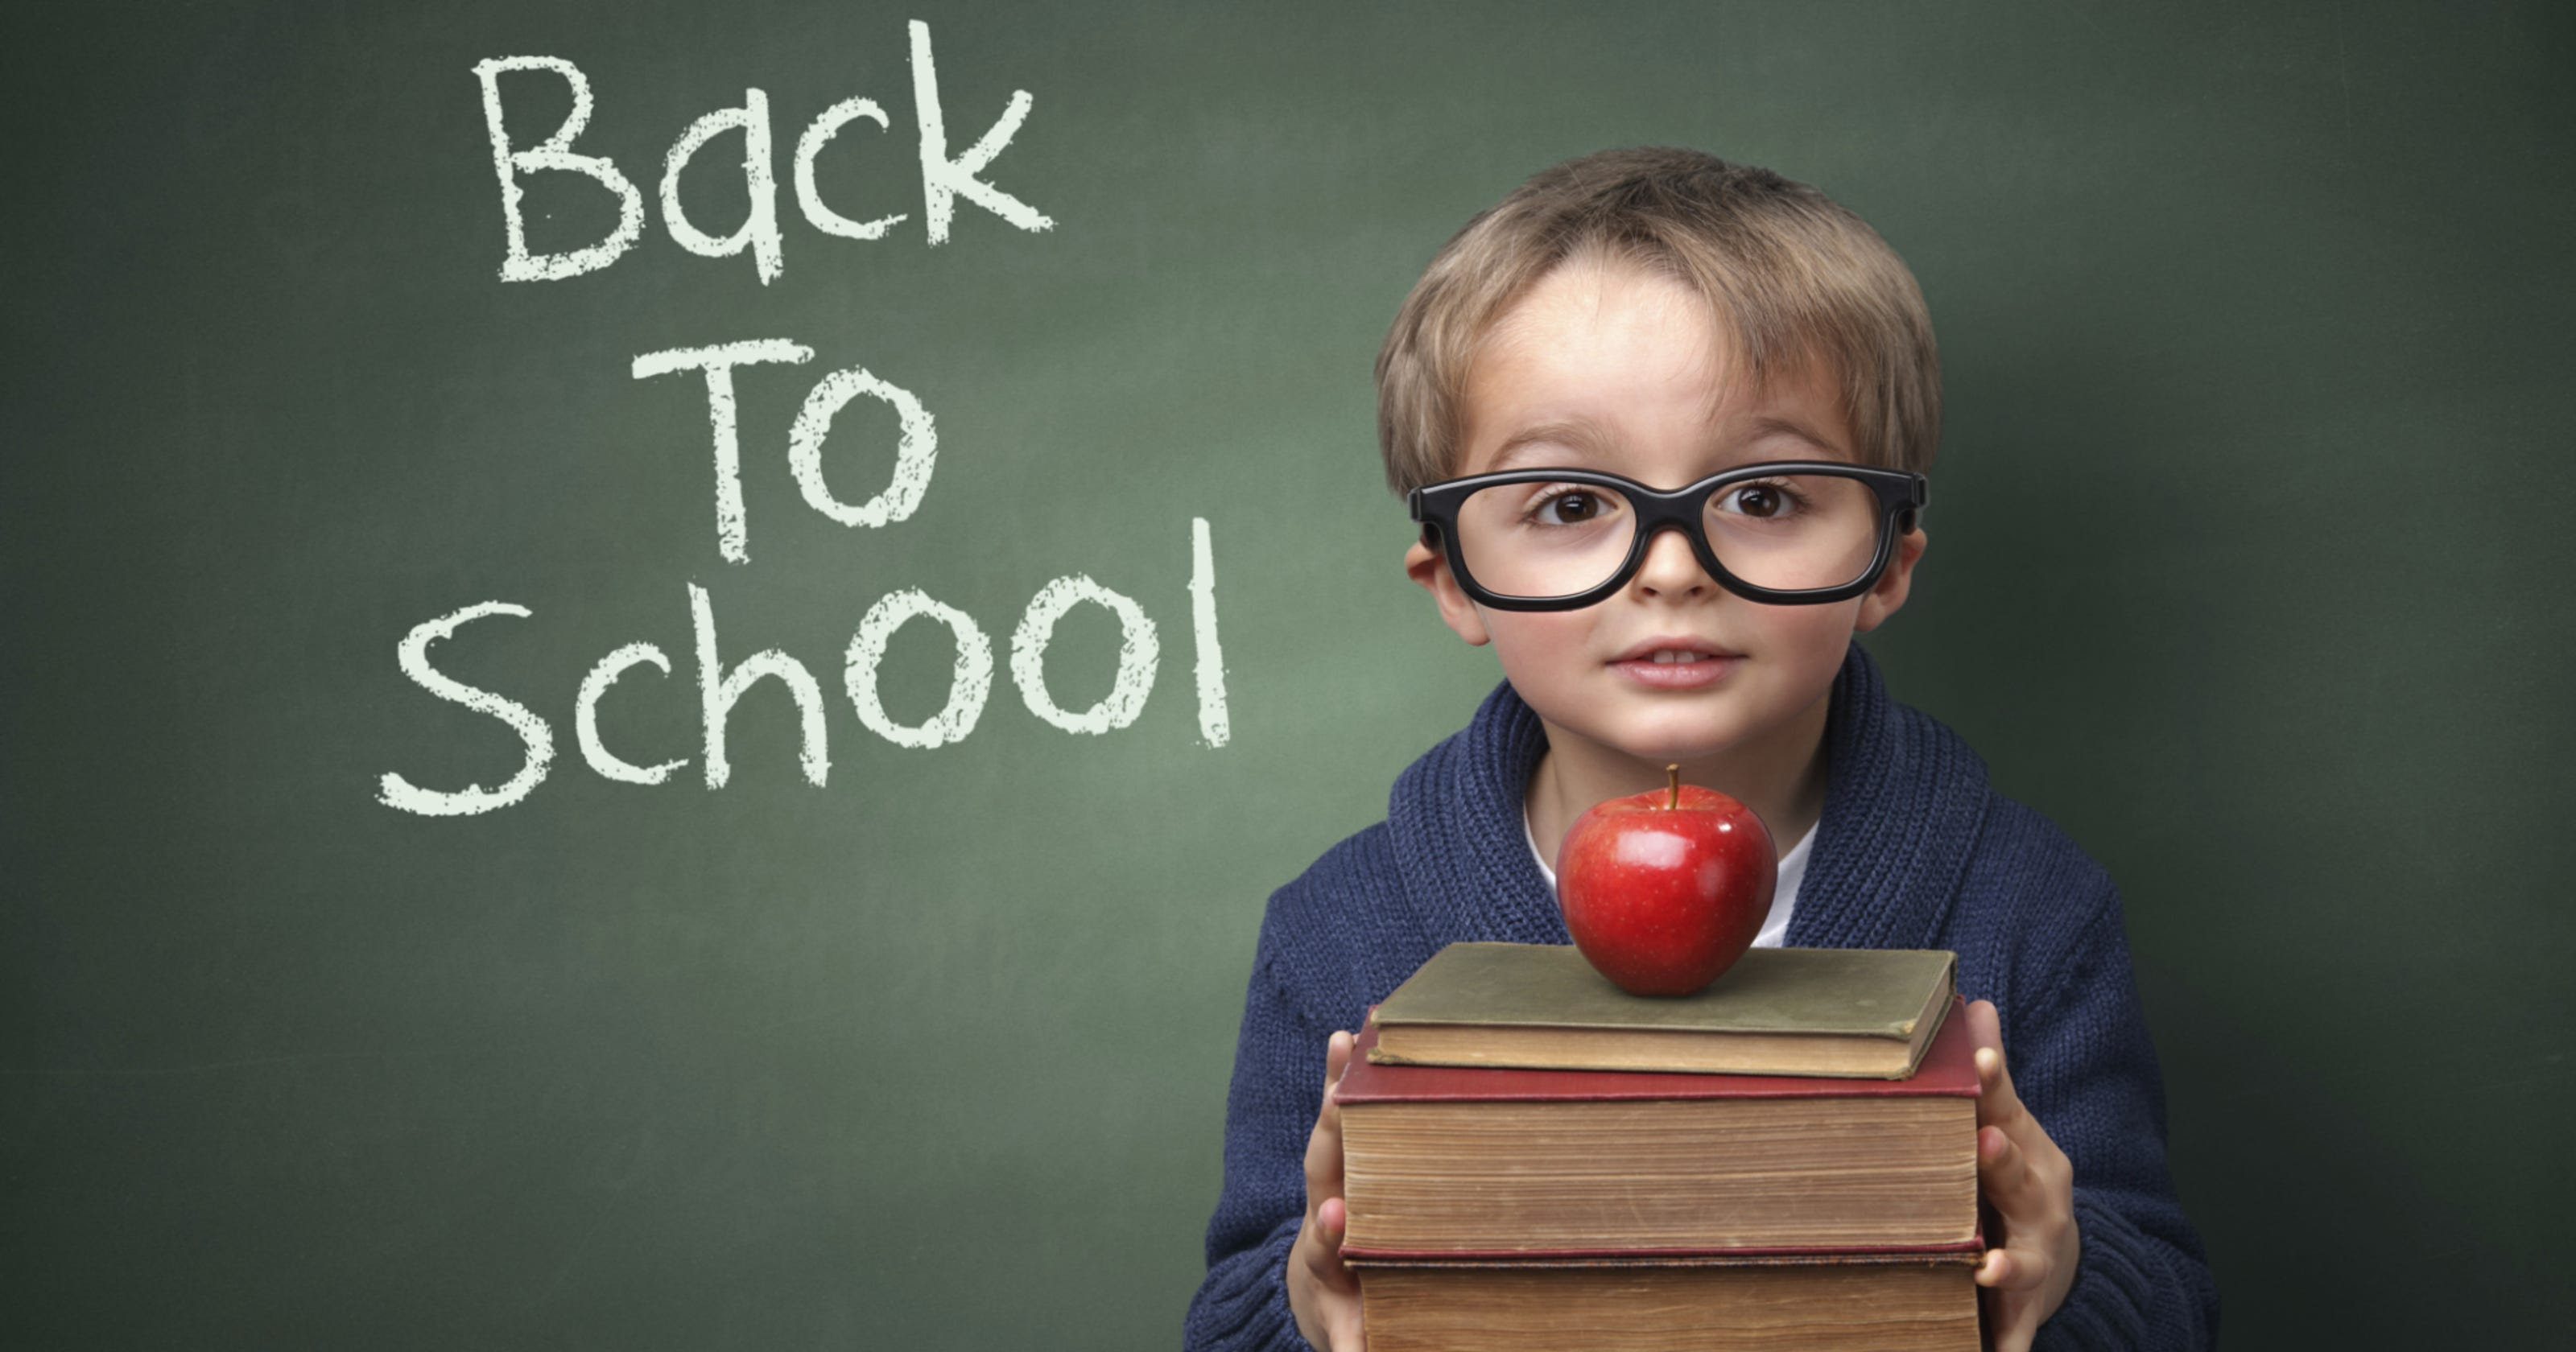 Share your first day of school horror stories to win